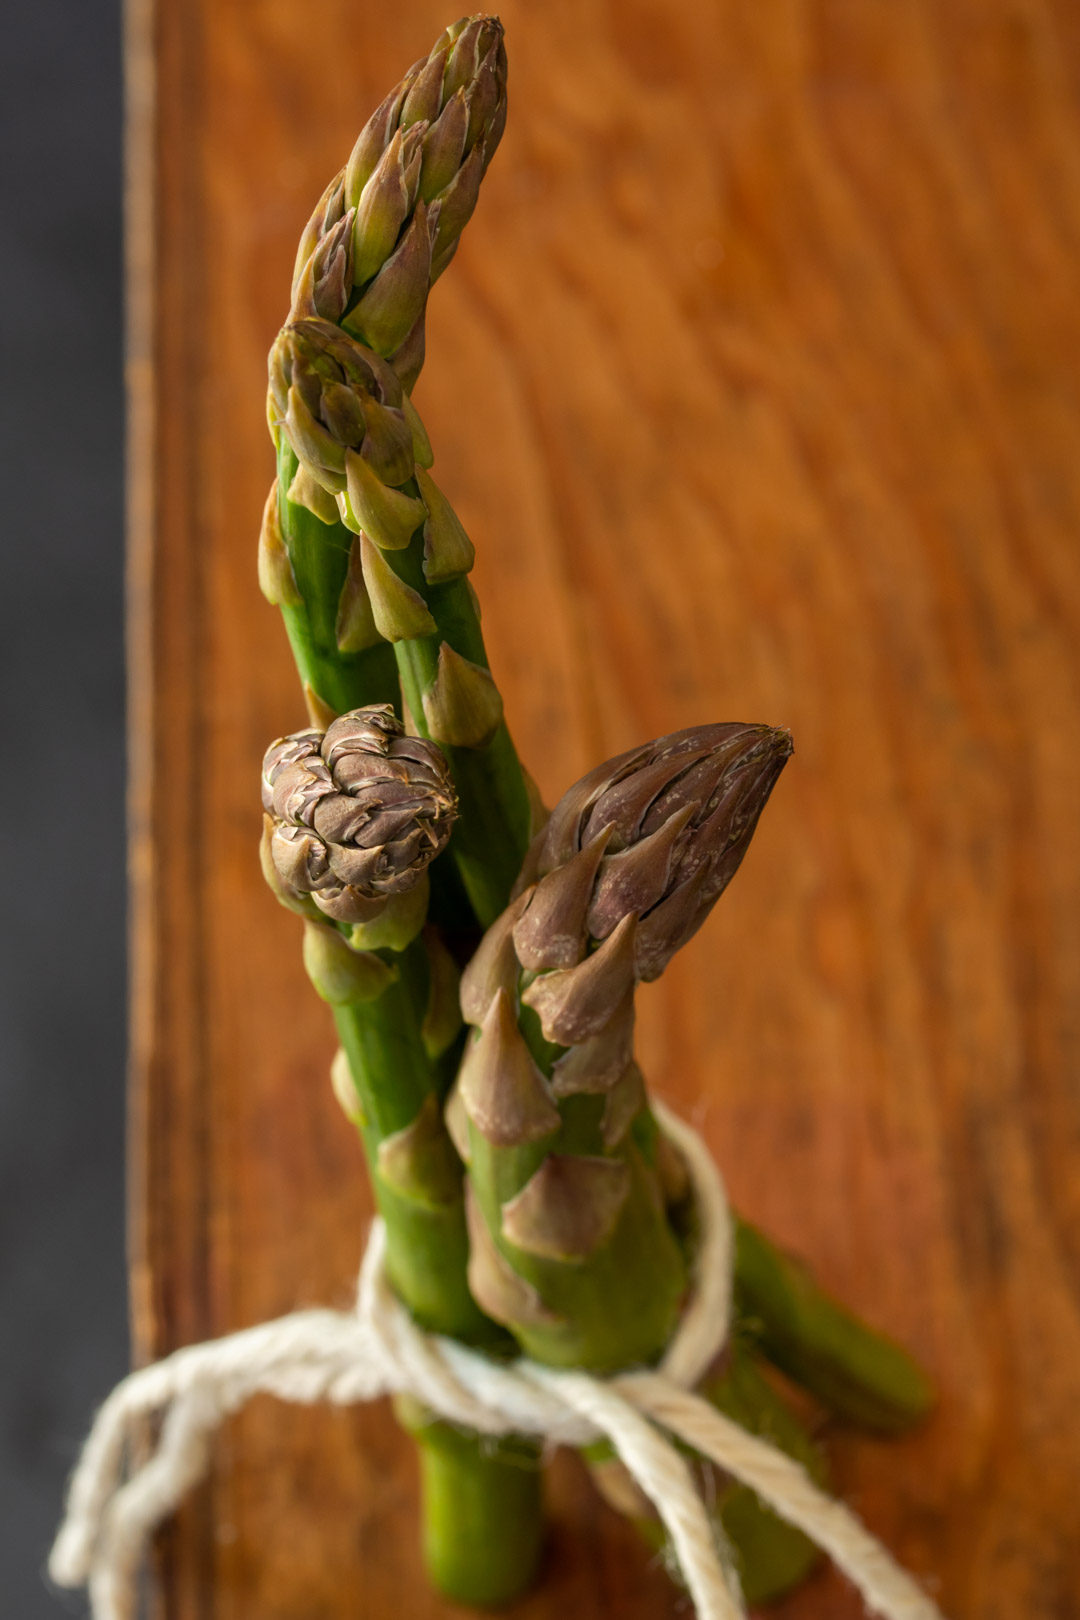 asparagus & lemon tart: asparagus still life on wooden box